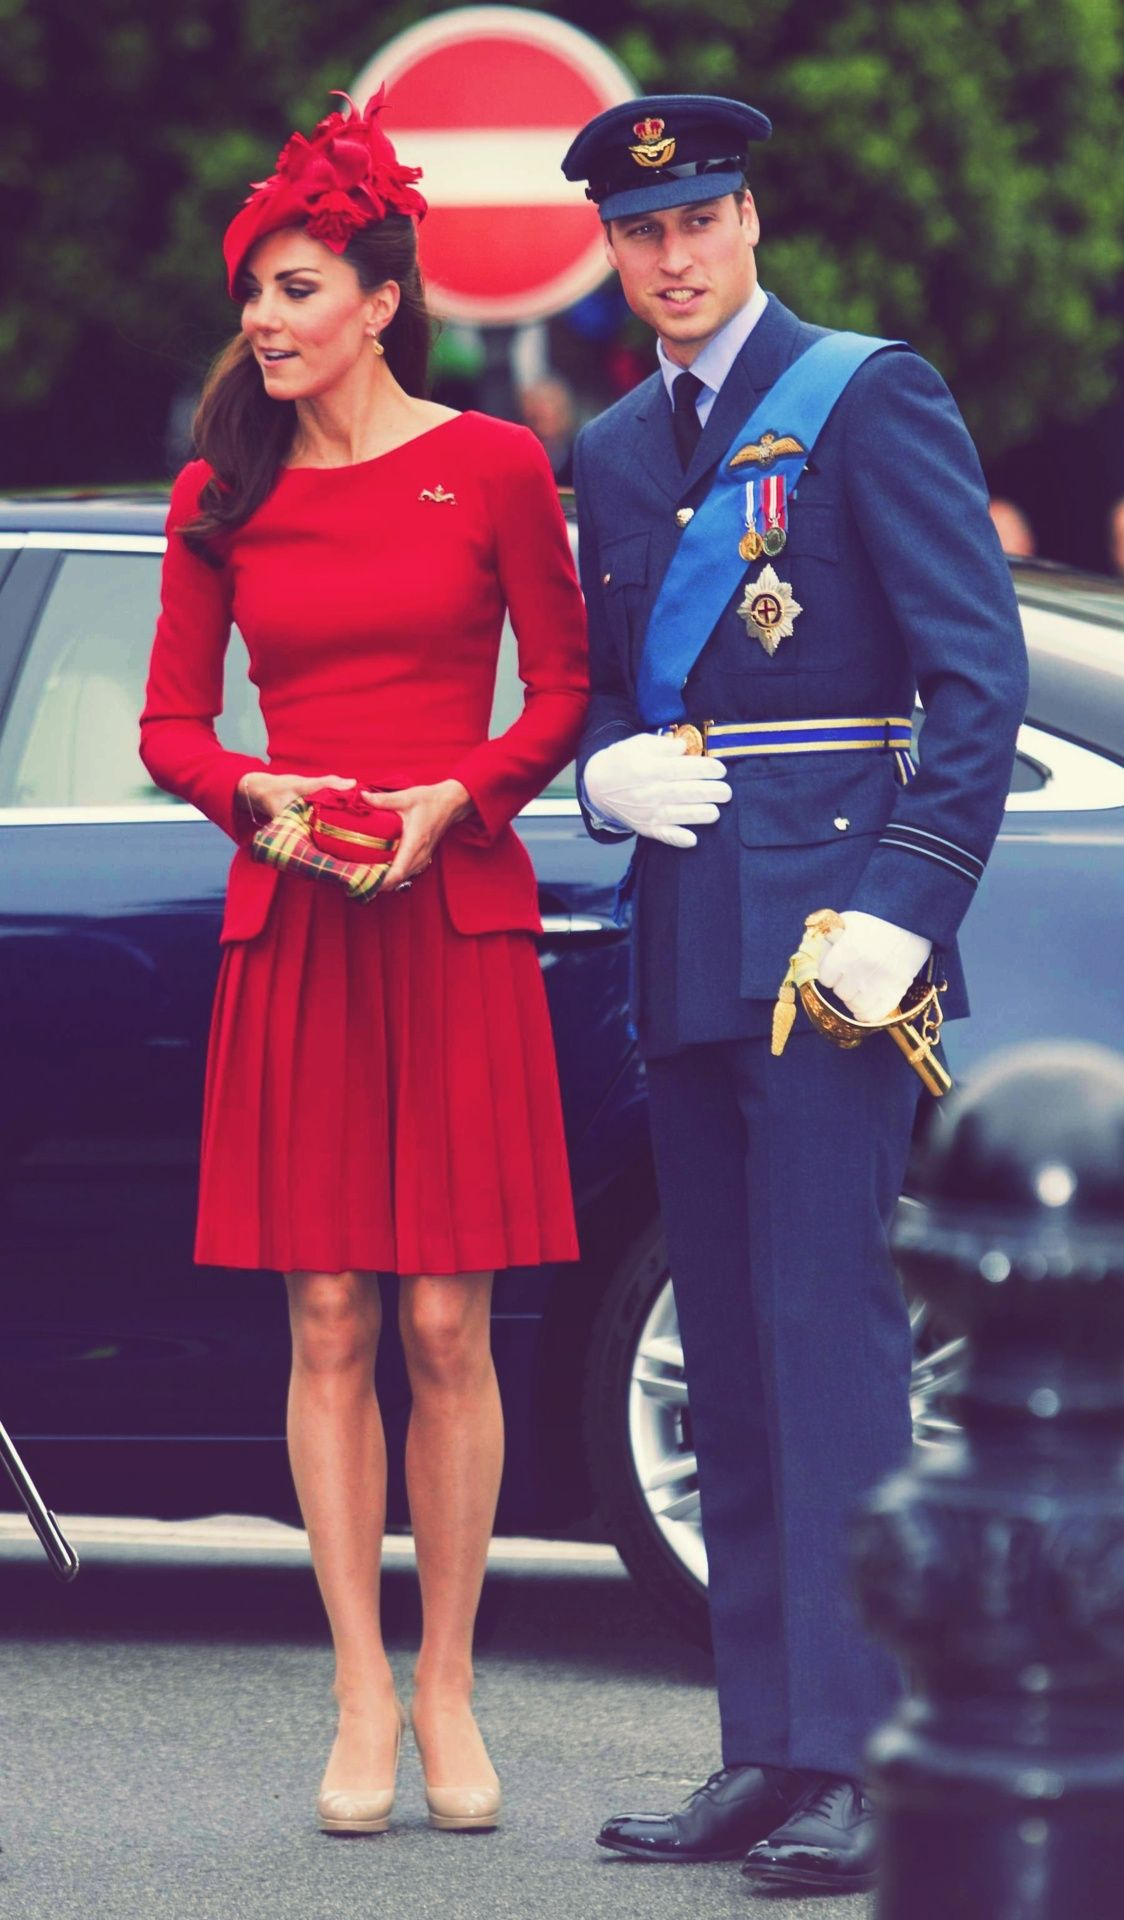 Prince william duchess kate prince william and kate middleton the duke and duchess of